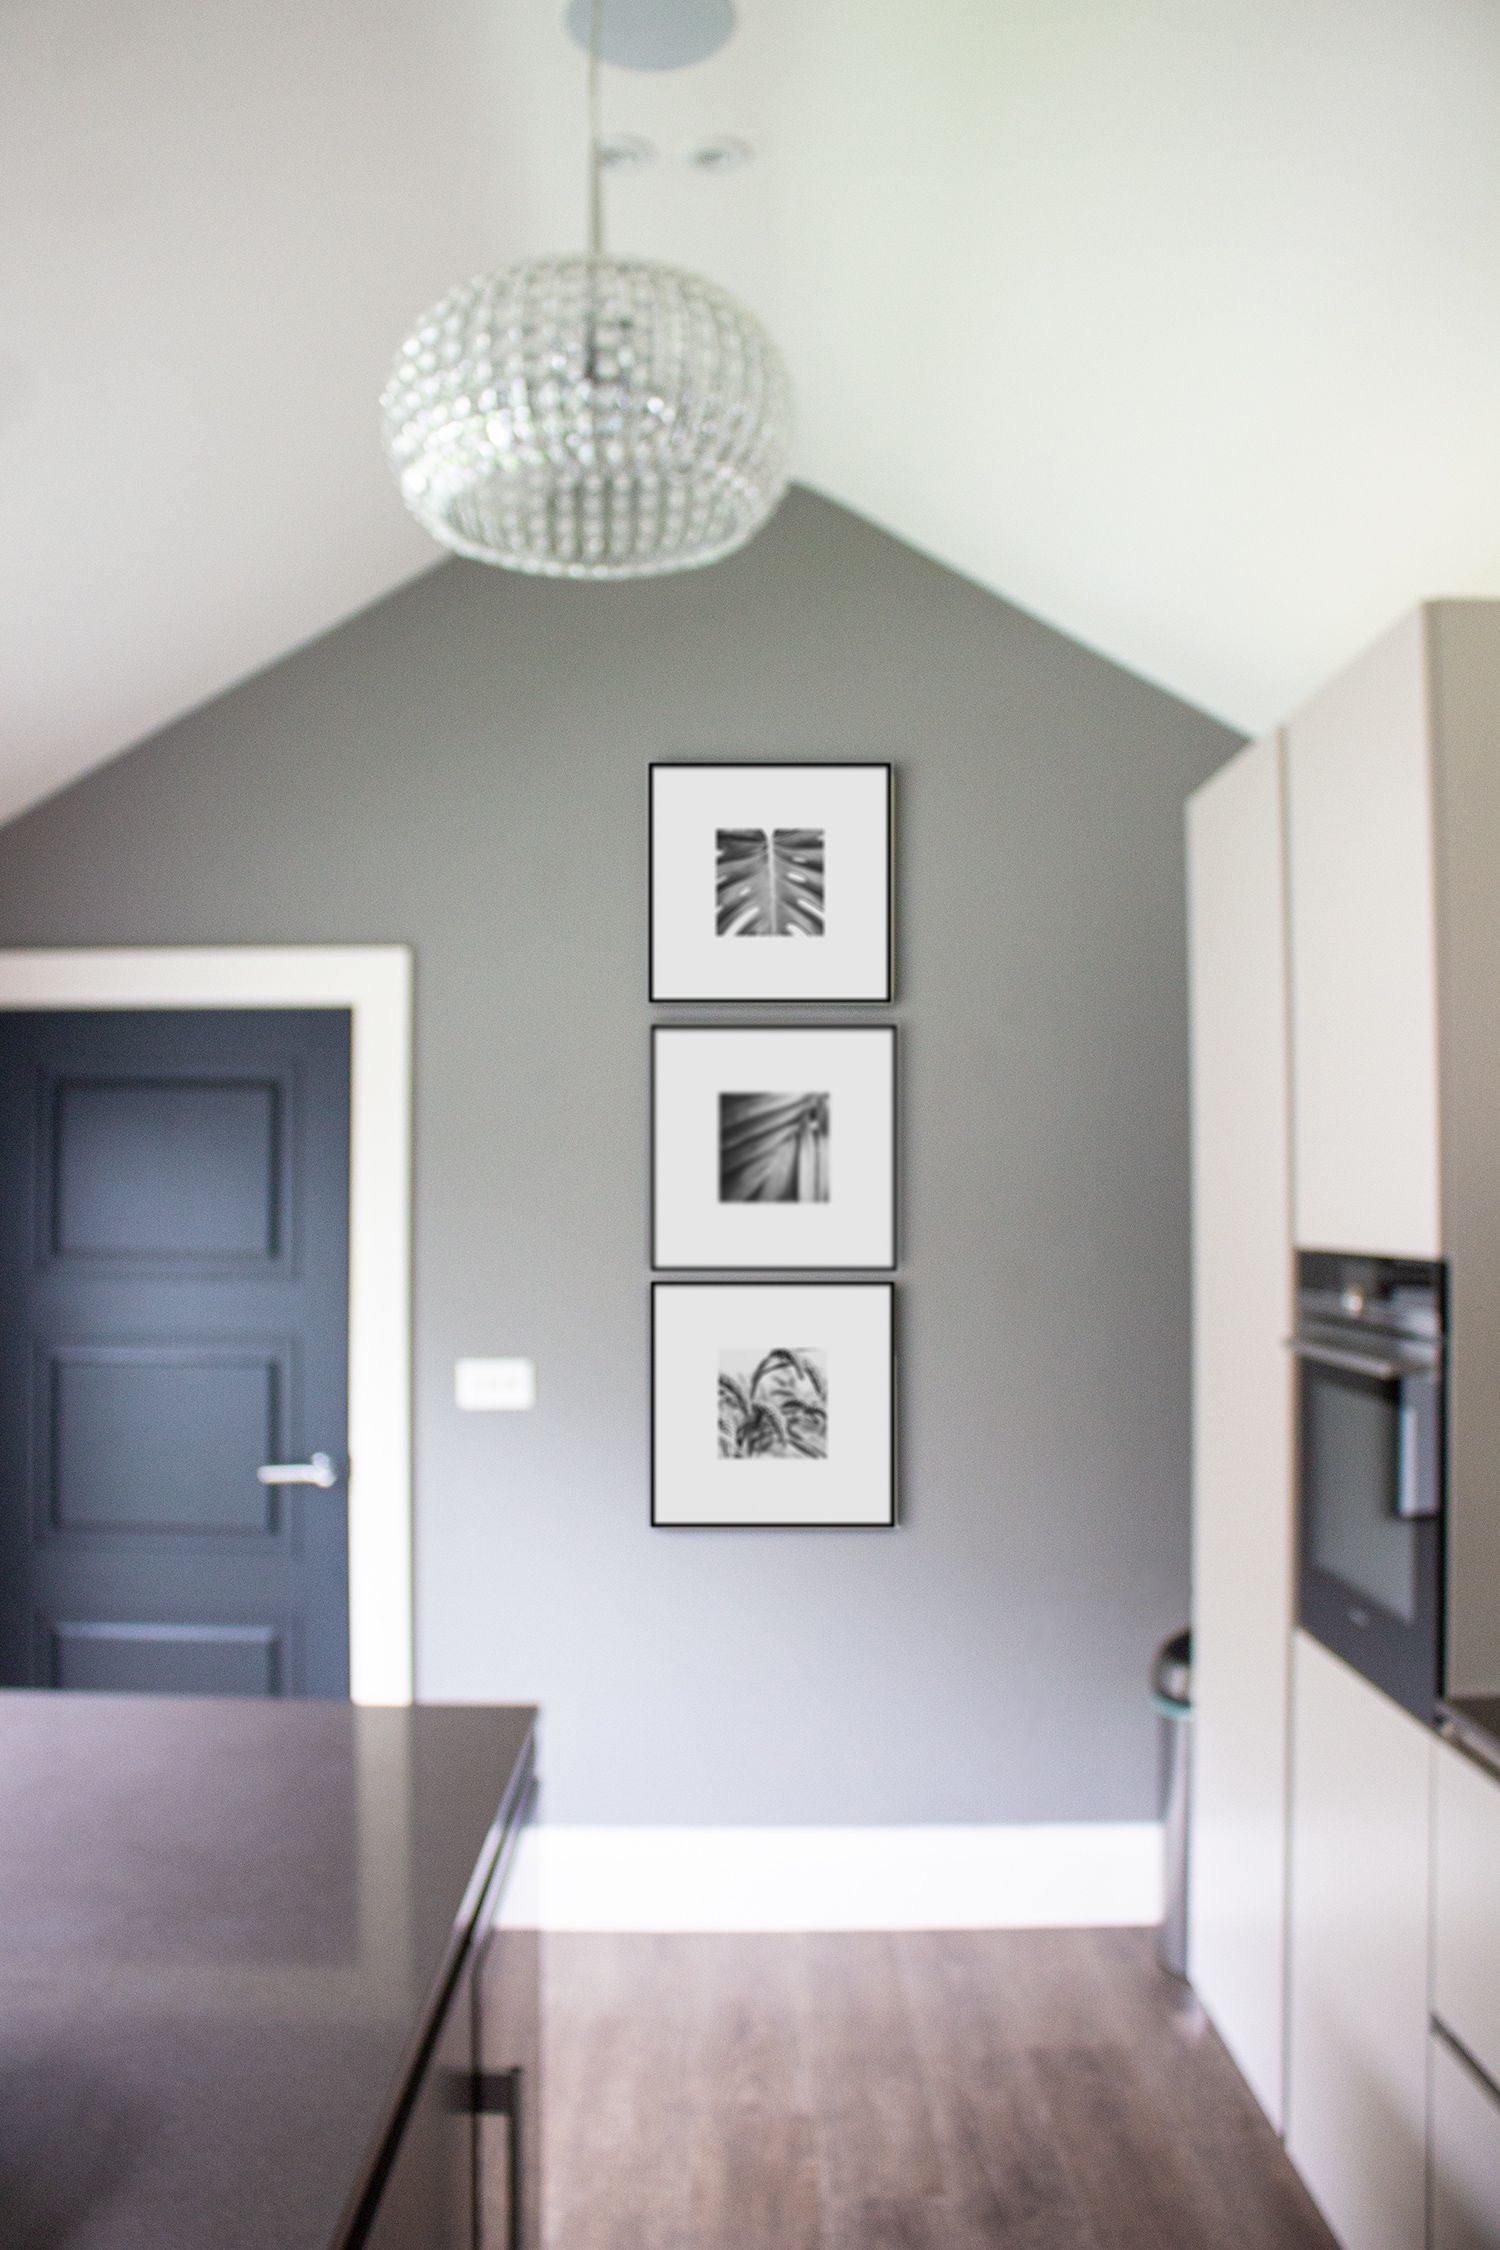 A photo of the three new black and white prints on the wall at the far end of the kitchen.